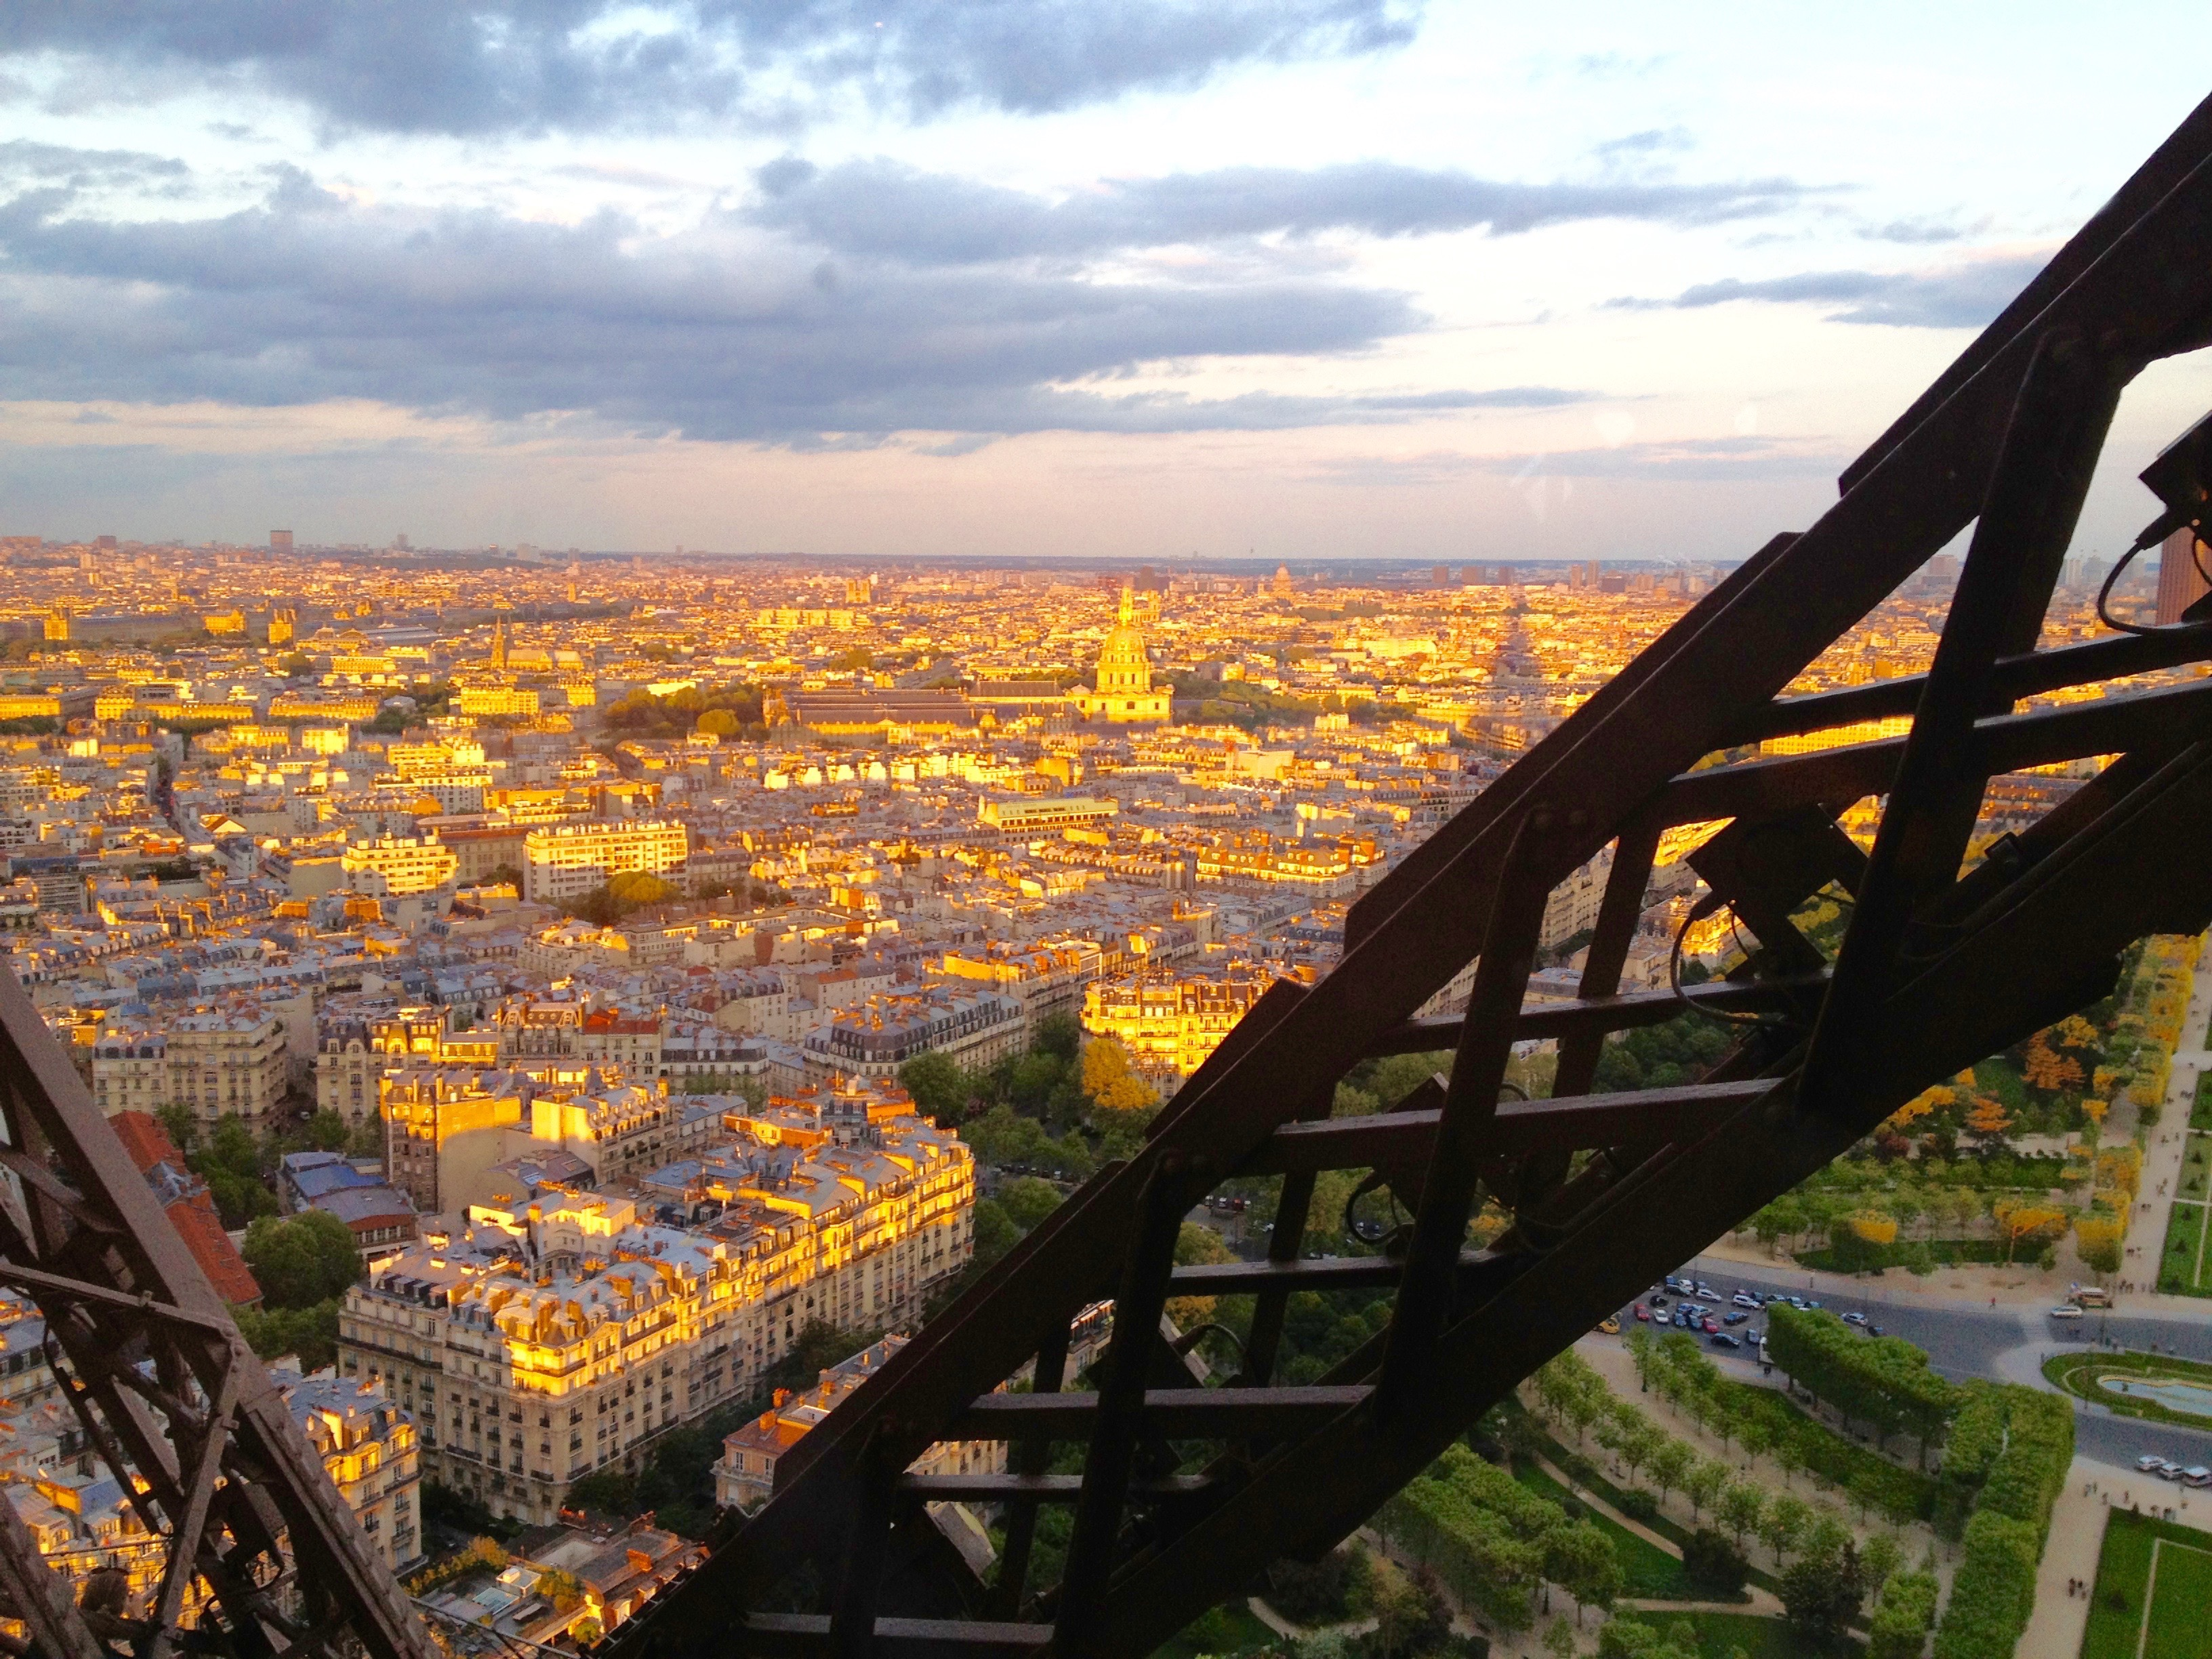 Looking down on Paris from the Jules Verne